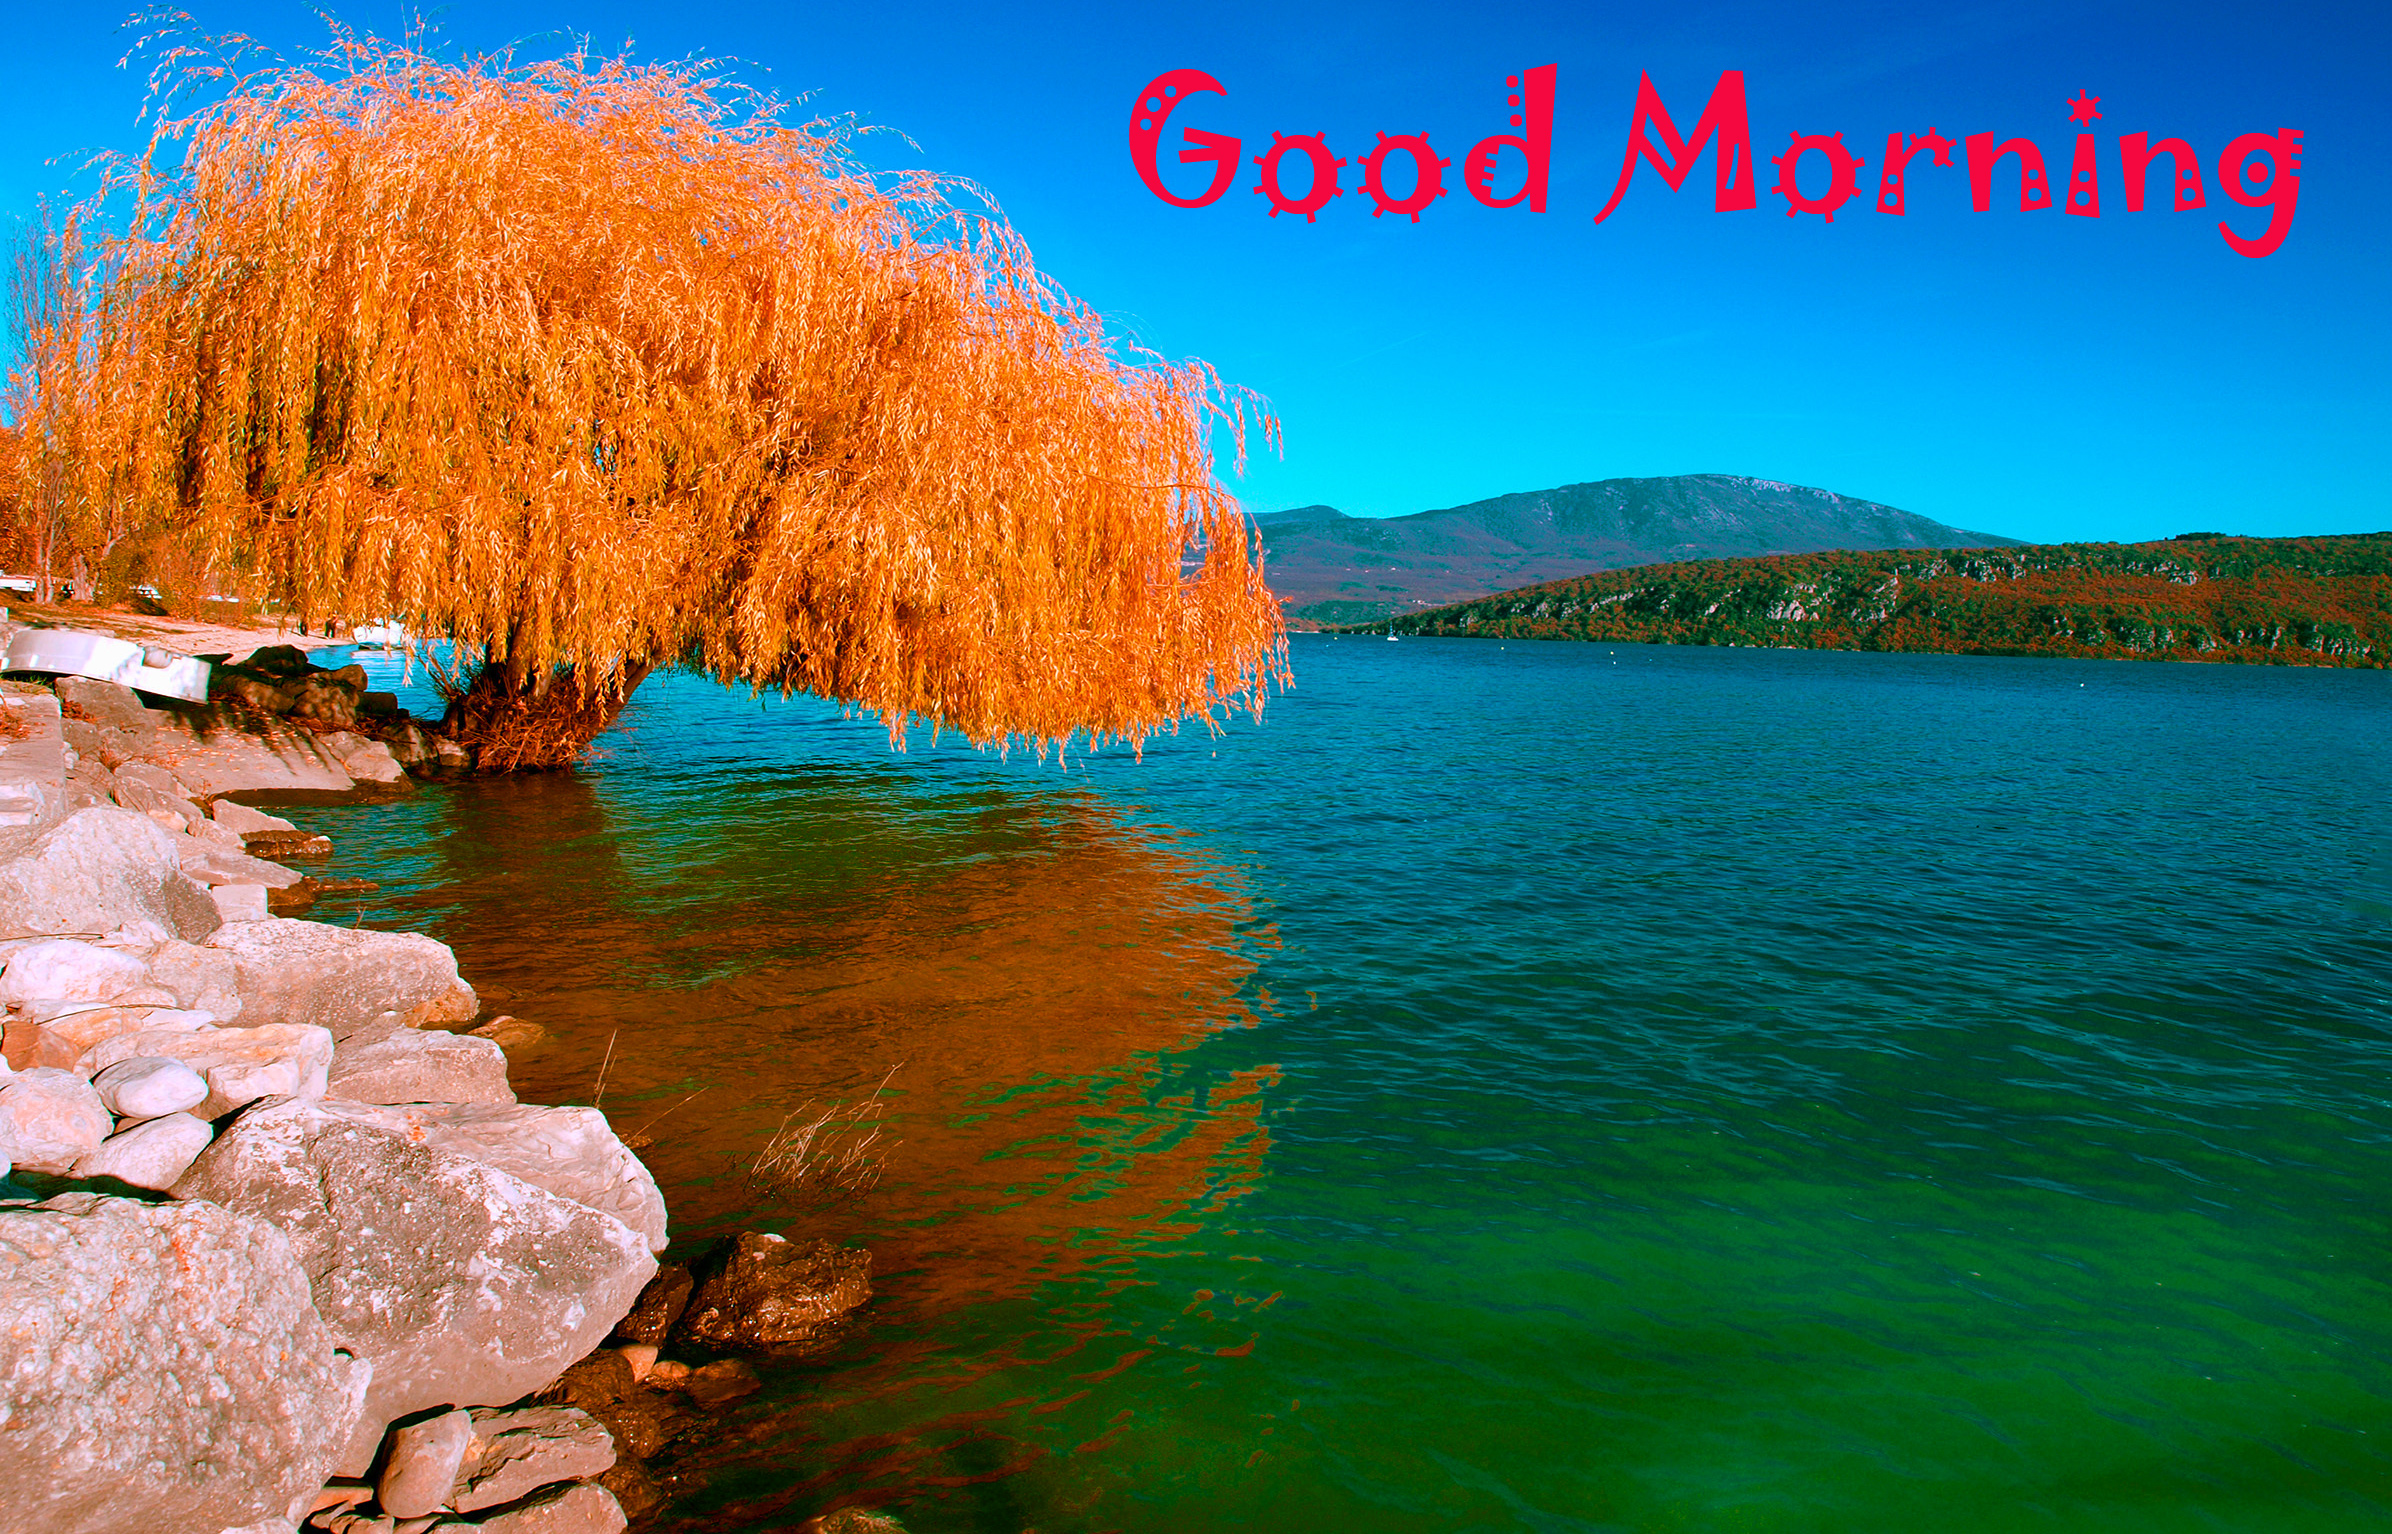 Good Morning Images Wallpaper Pics Download With Beautiful nature